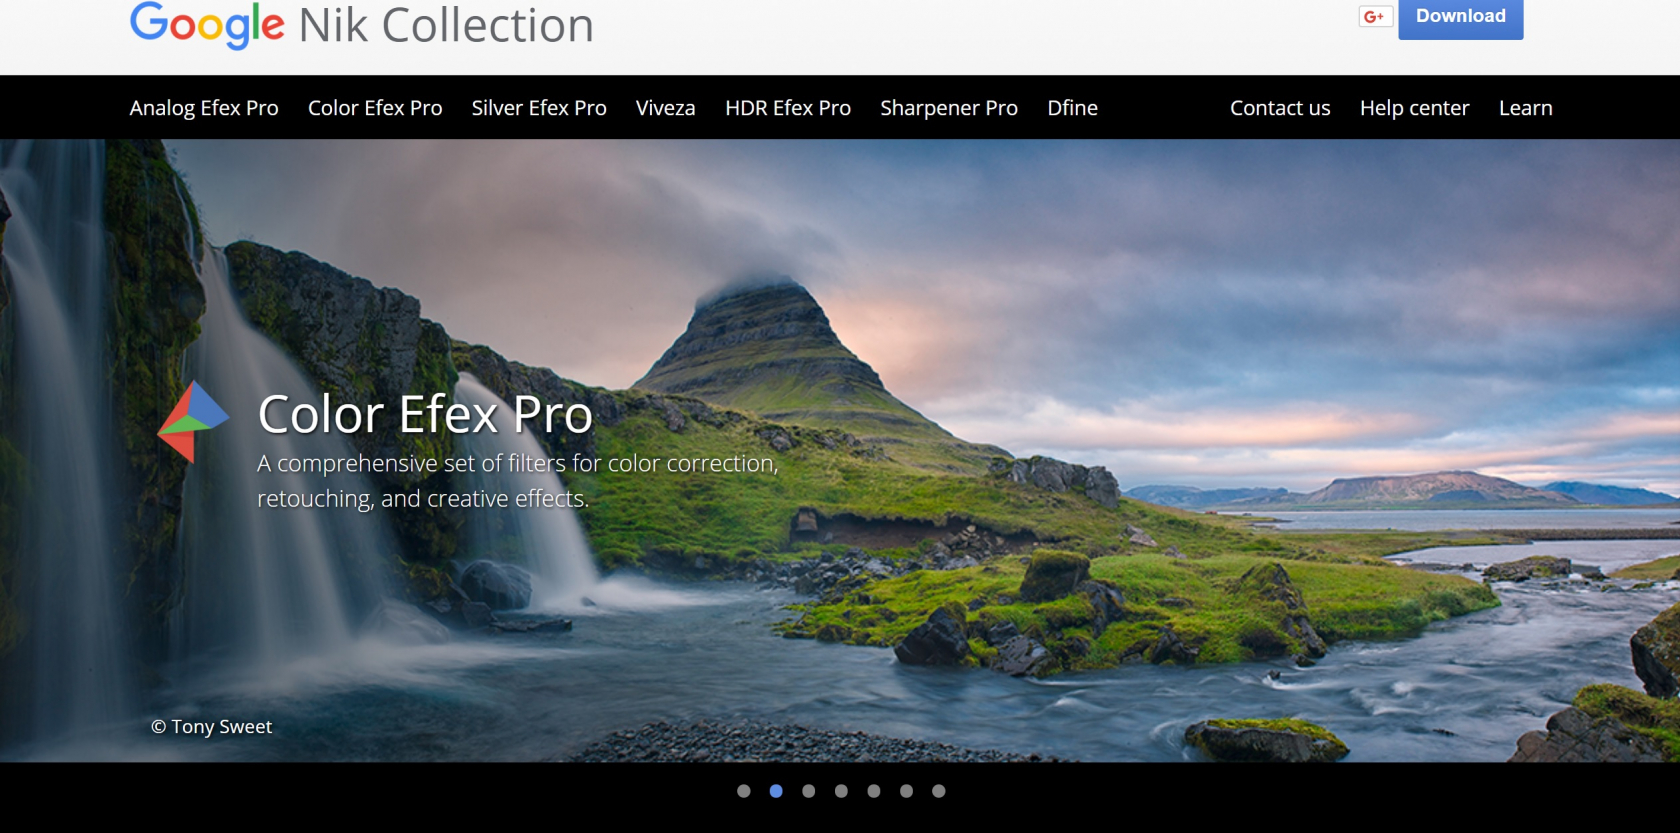 DxO saves Google's Nik Collection photo editing software from extinction